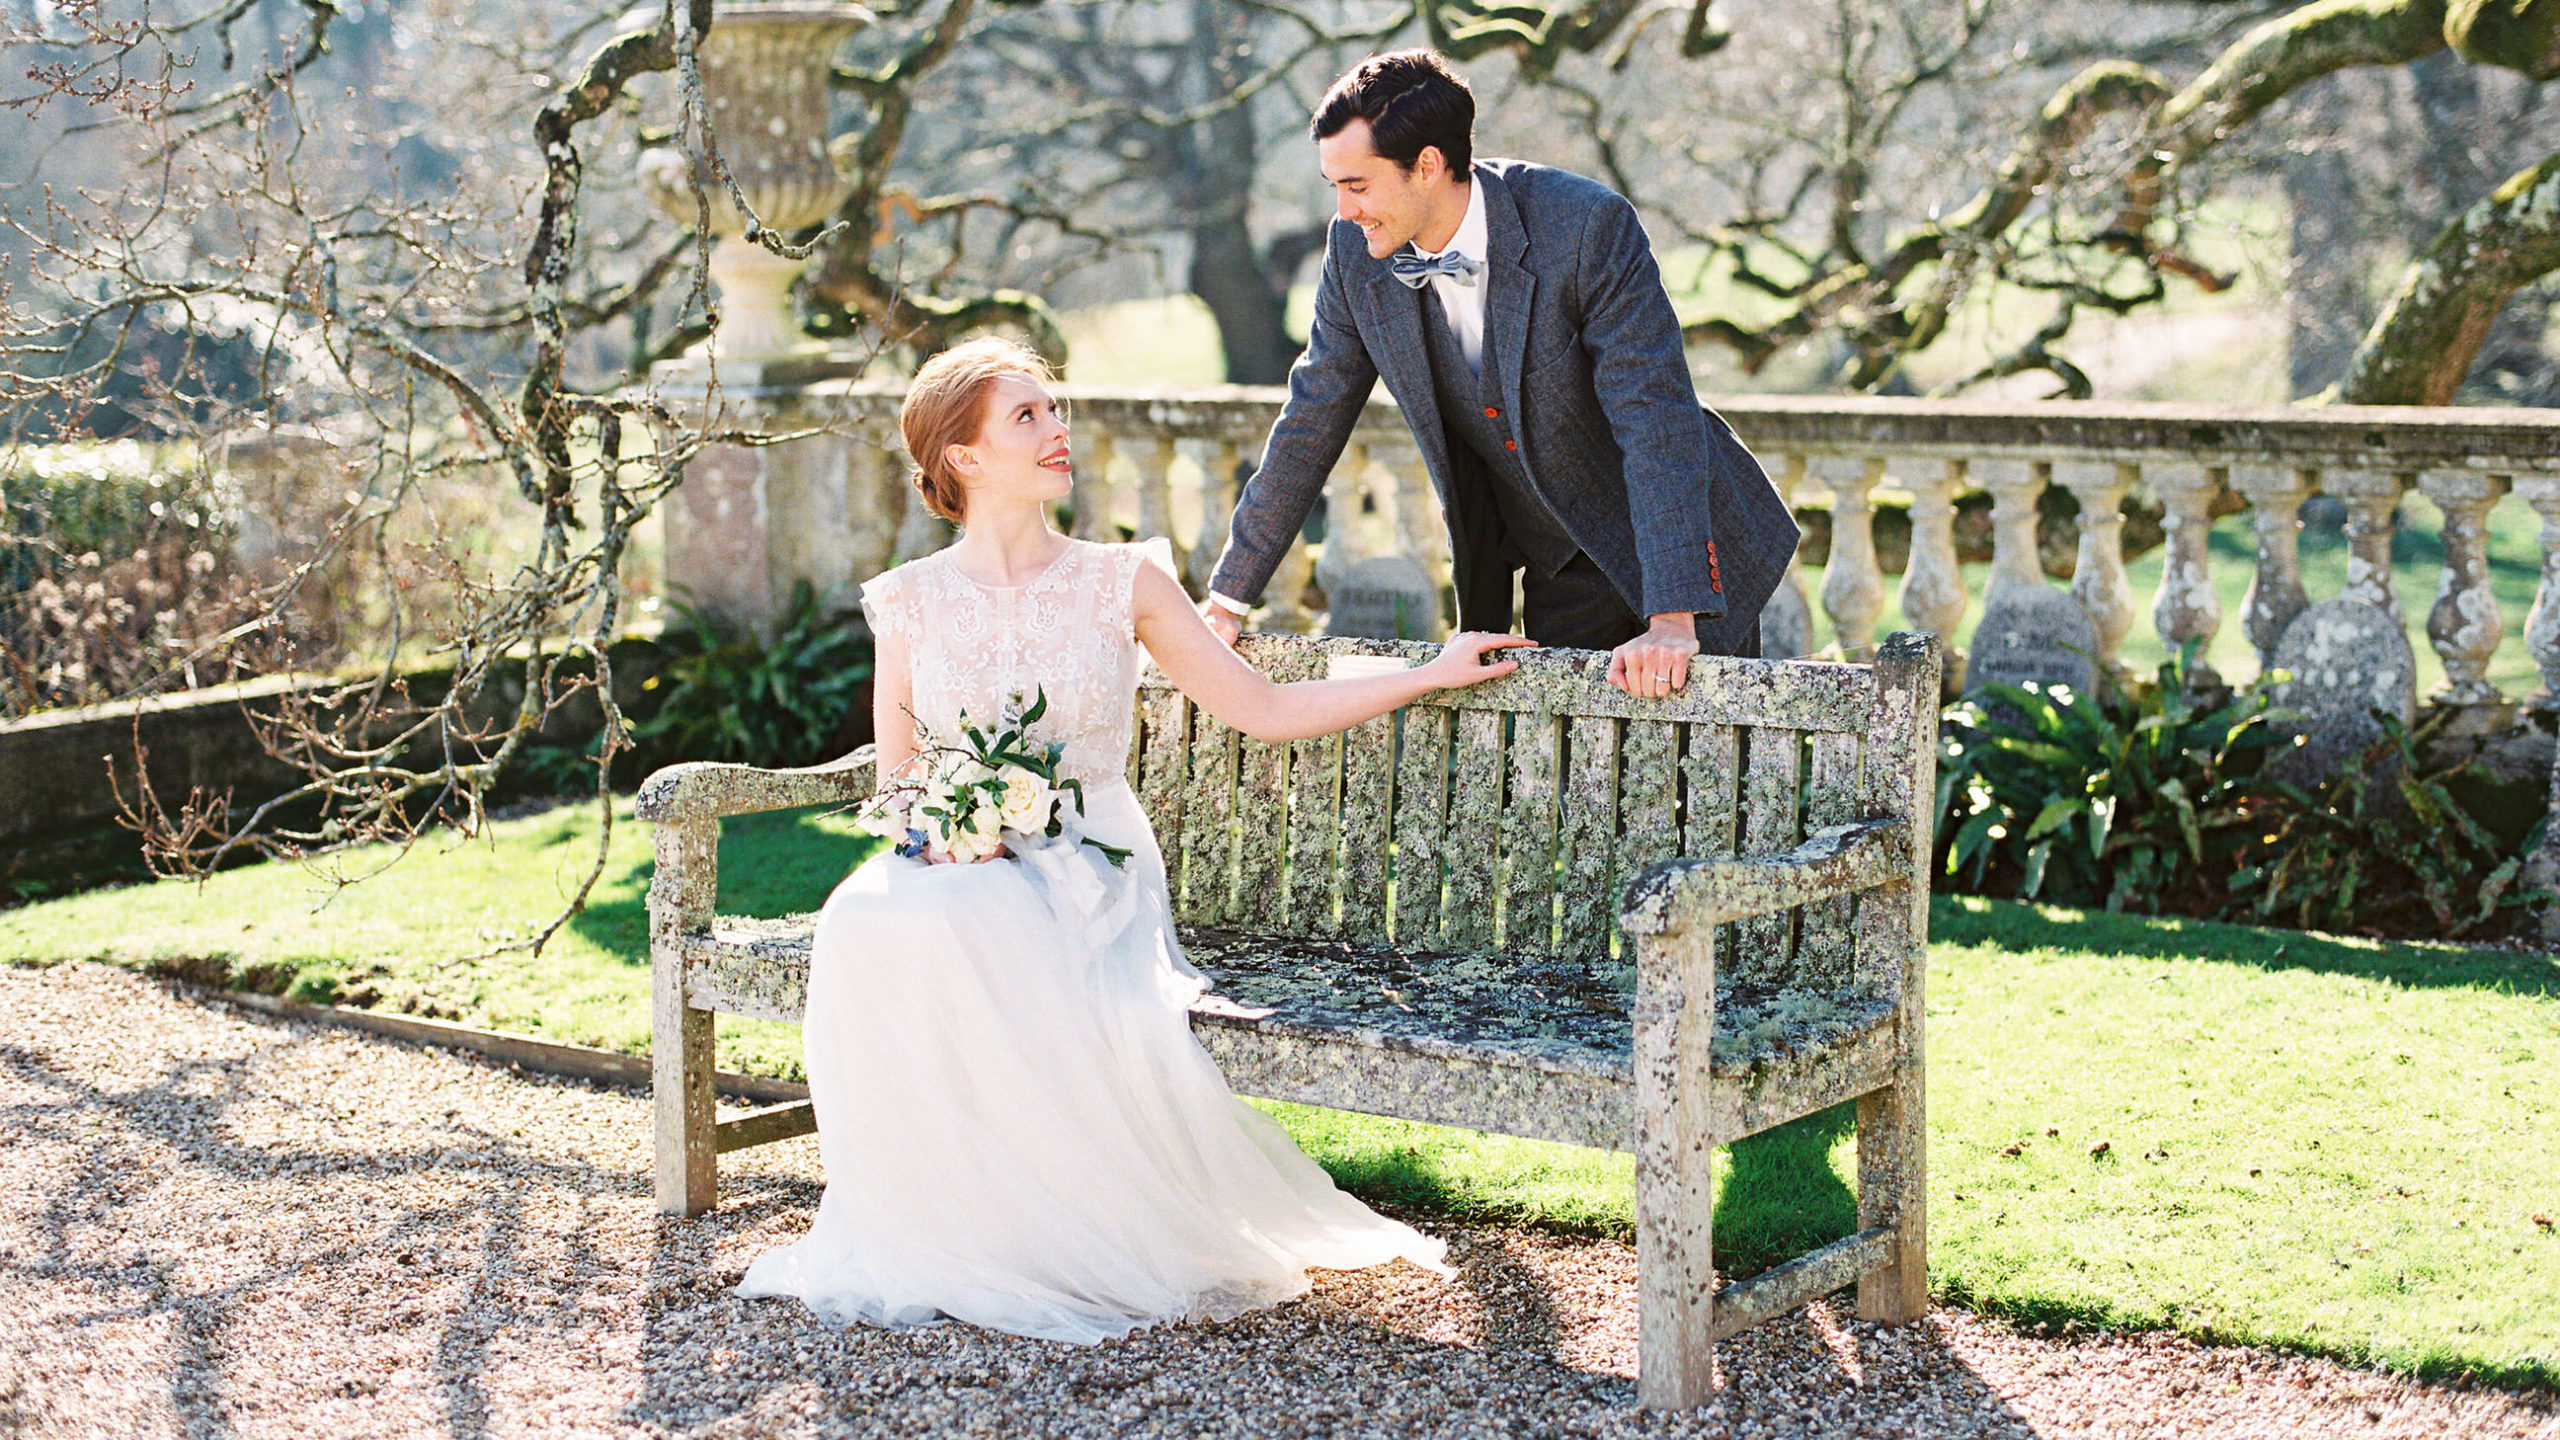 Elegant and sophisticated wedding couple in the grounds of Somerley House